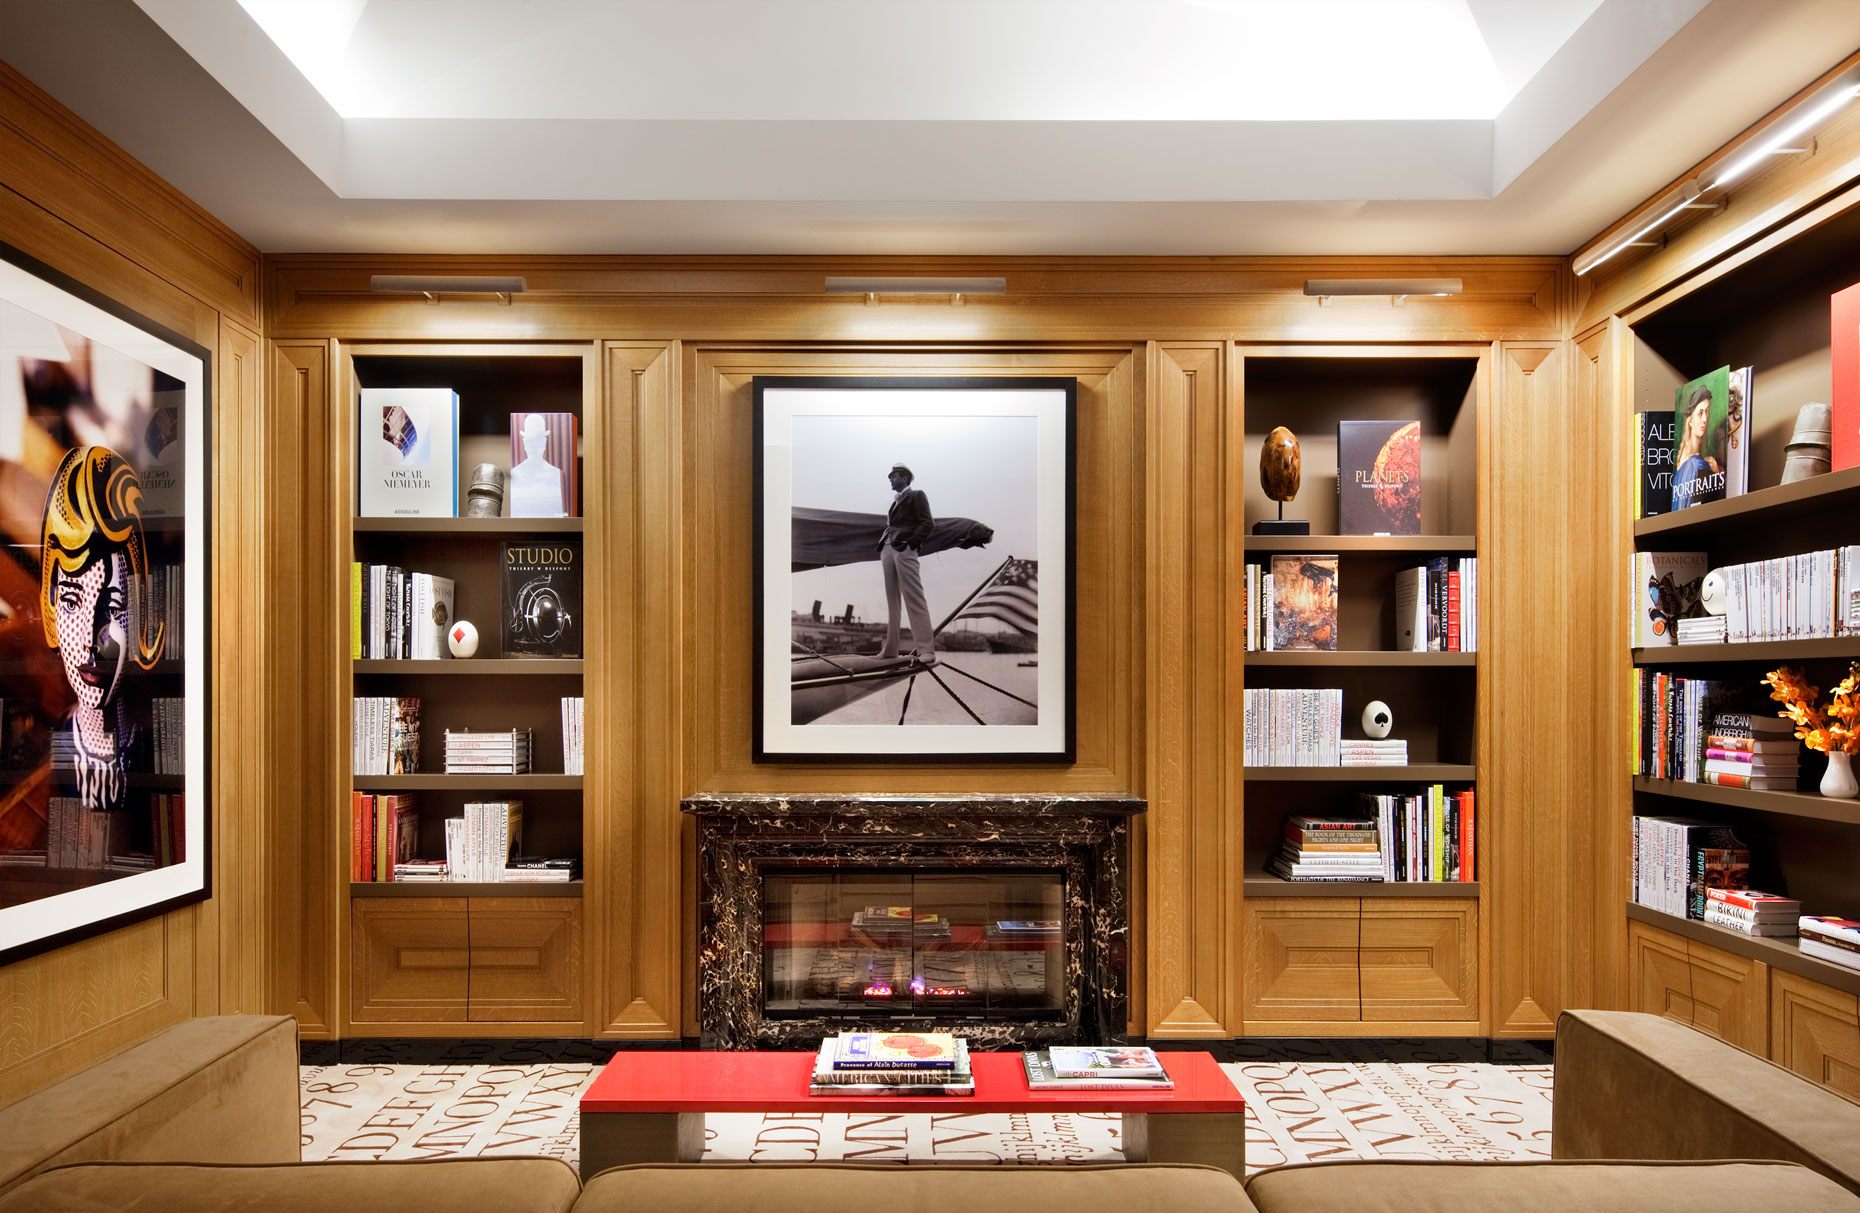 Library of Luxury Building